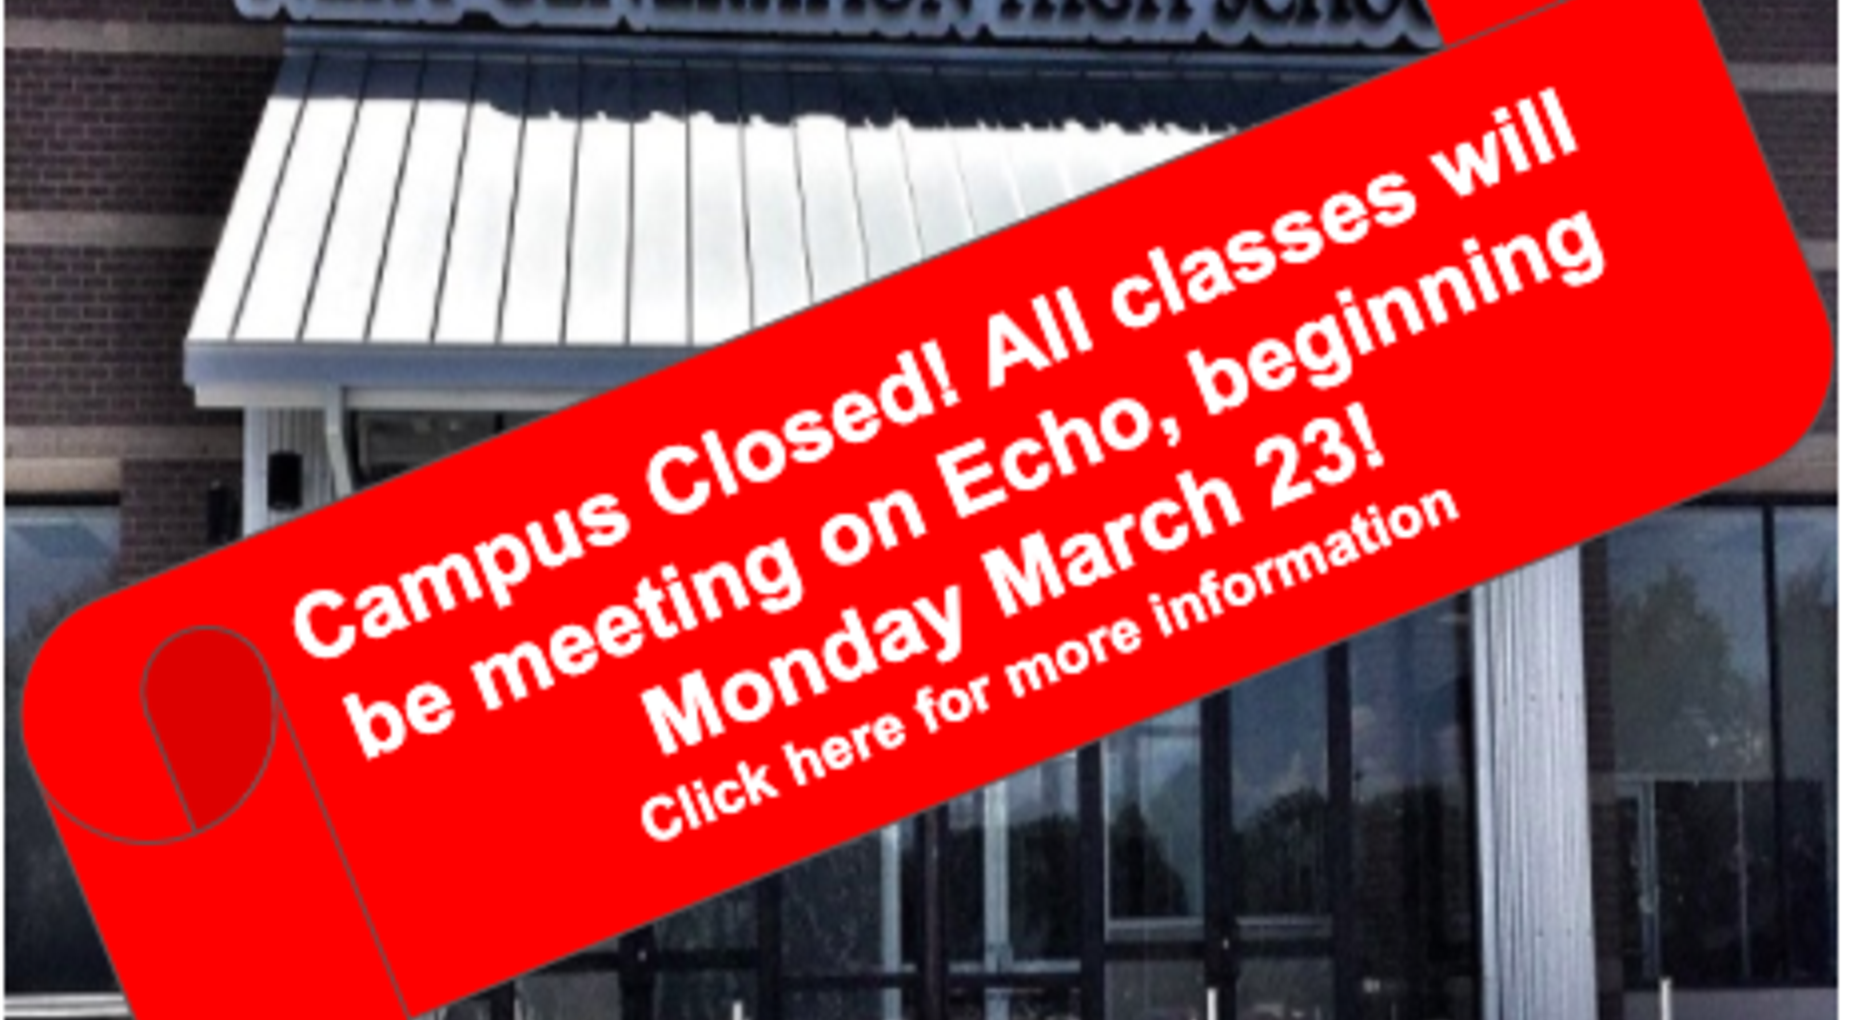 Campus Closed. All classes will be done online through Echo. Click the link for more information